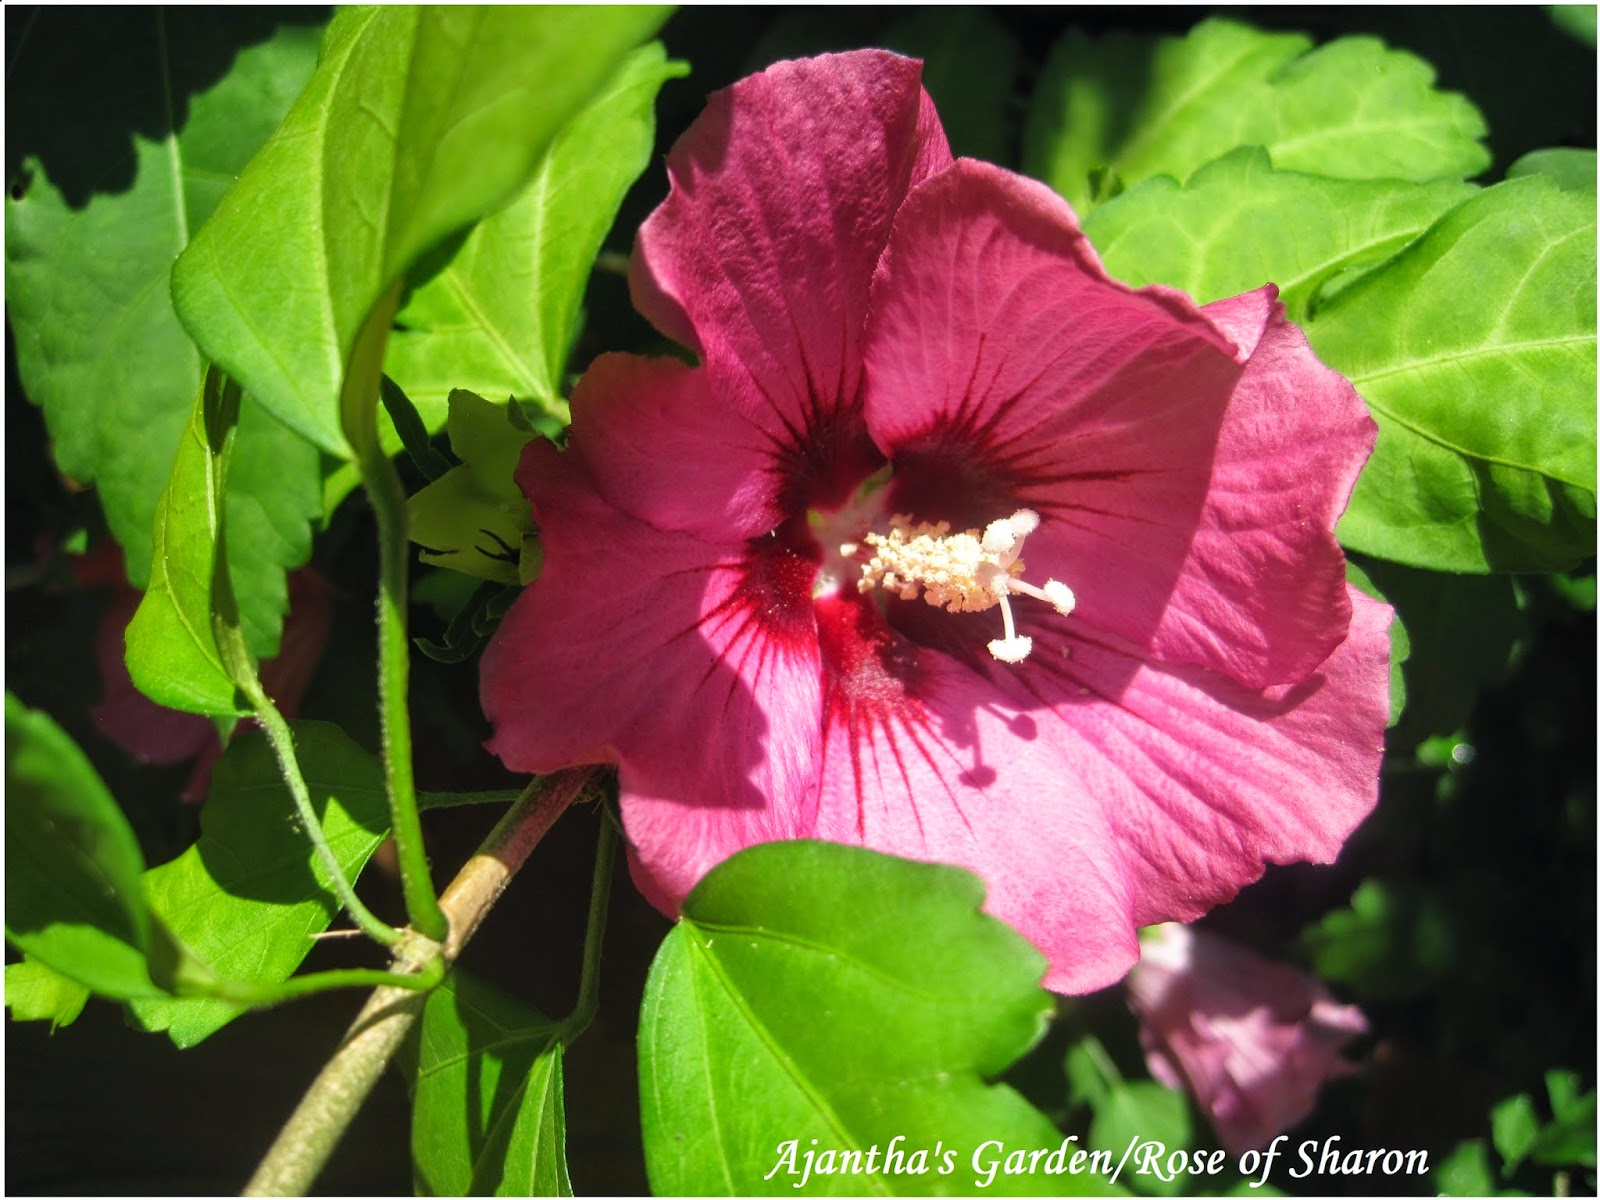 Ajantha's Garden/Rose of Sharon